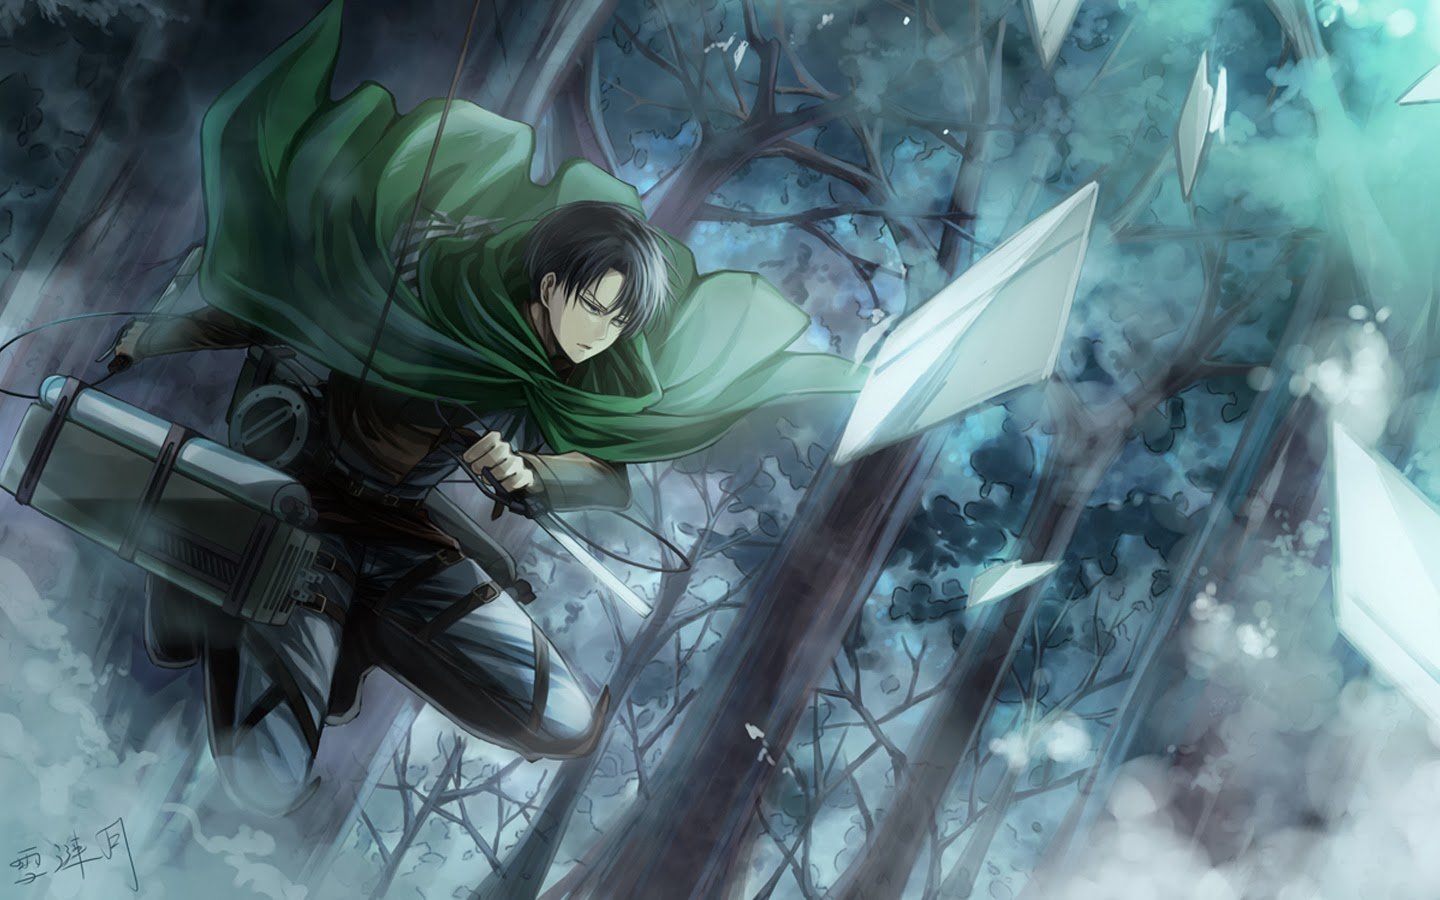 levi attack on titan hd wallpaper 1440x900jpg 1440x900